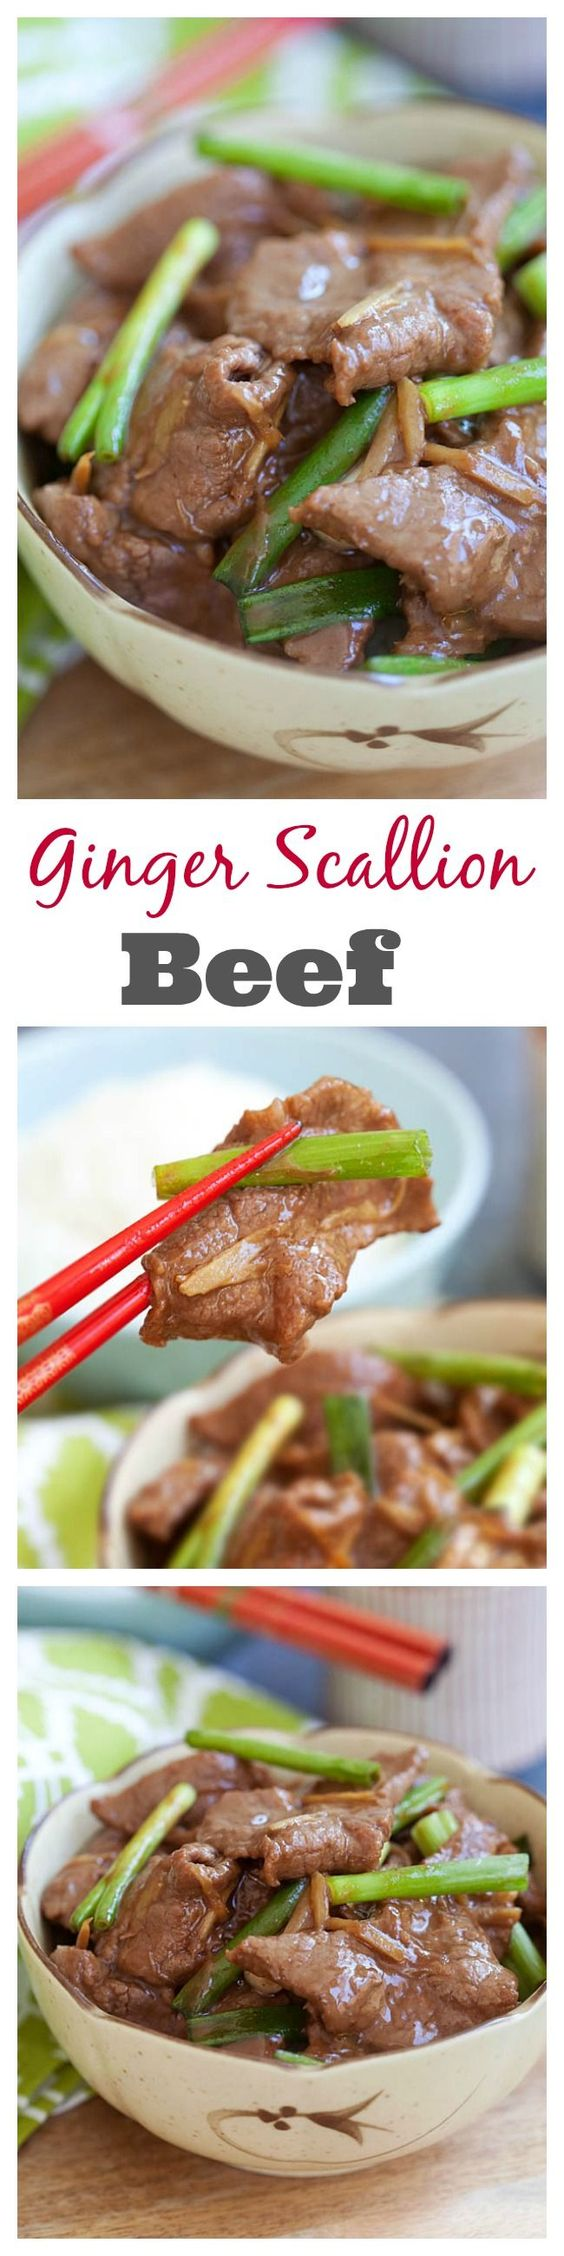 Ginger and Scallion Beef | Recipe | 12 weeks, Beef recipes ...